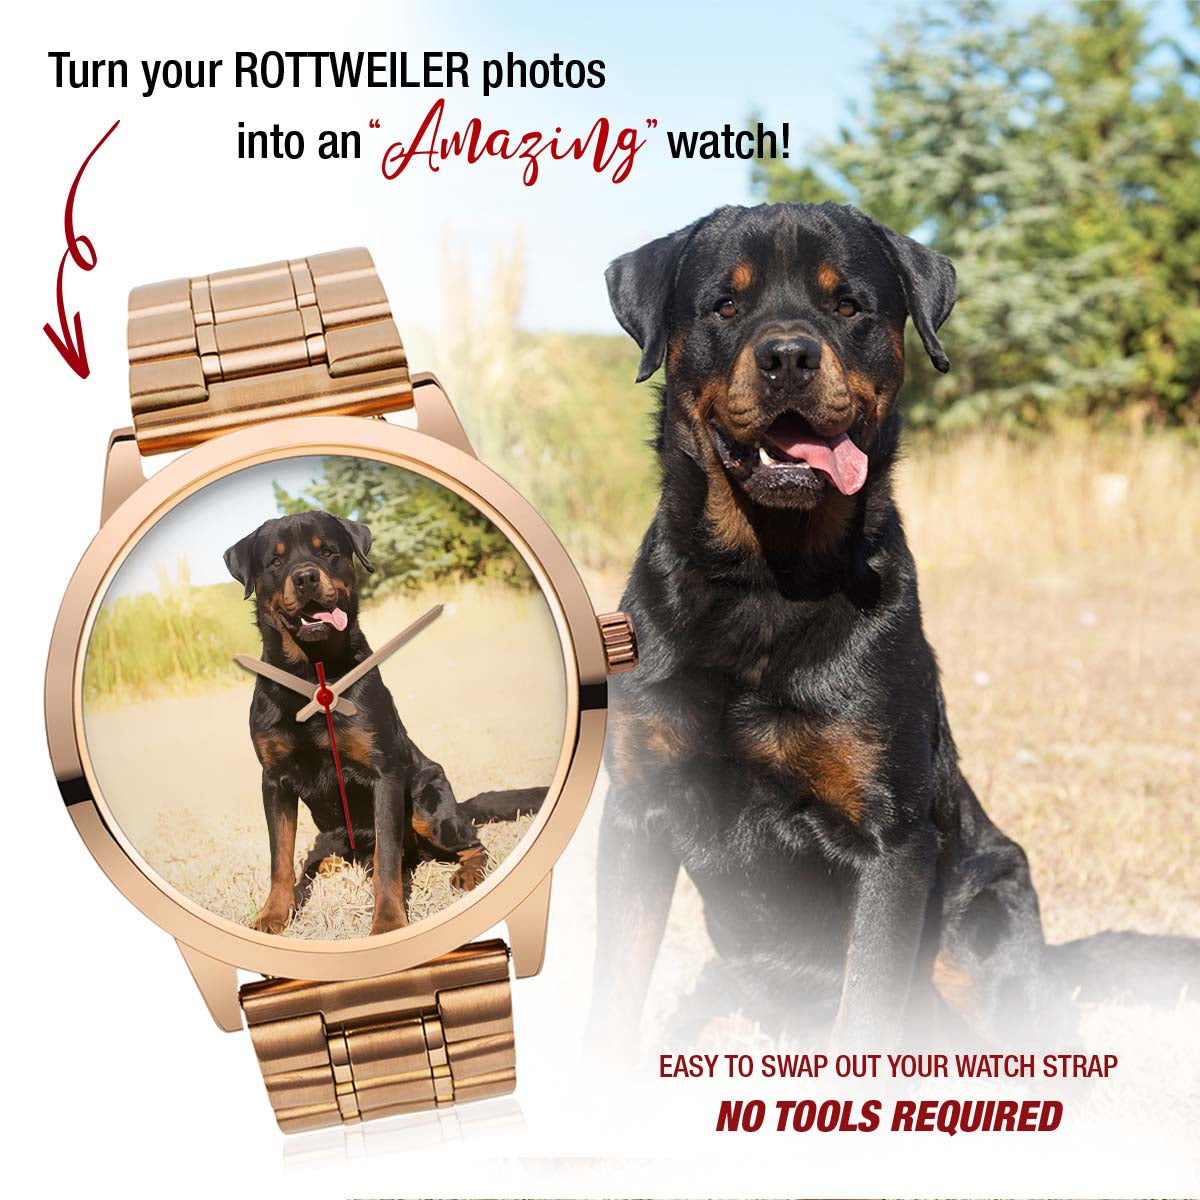 PERSONALIZED watch - upload your ROTTWEILER